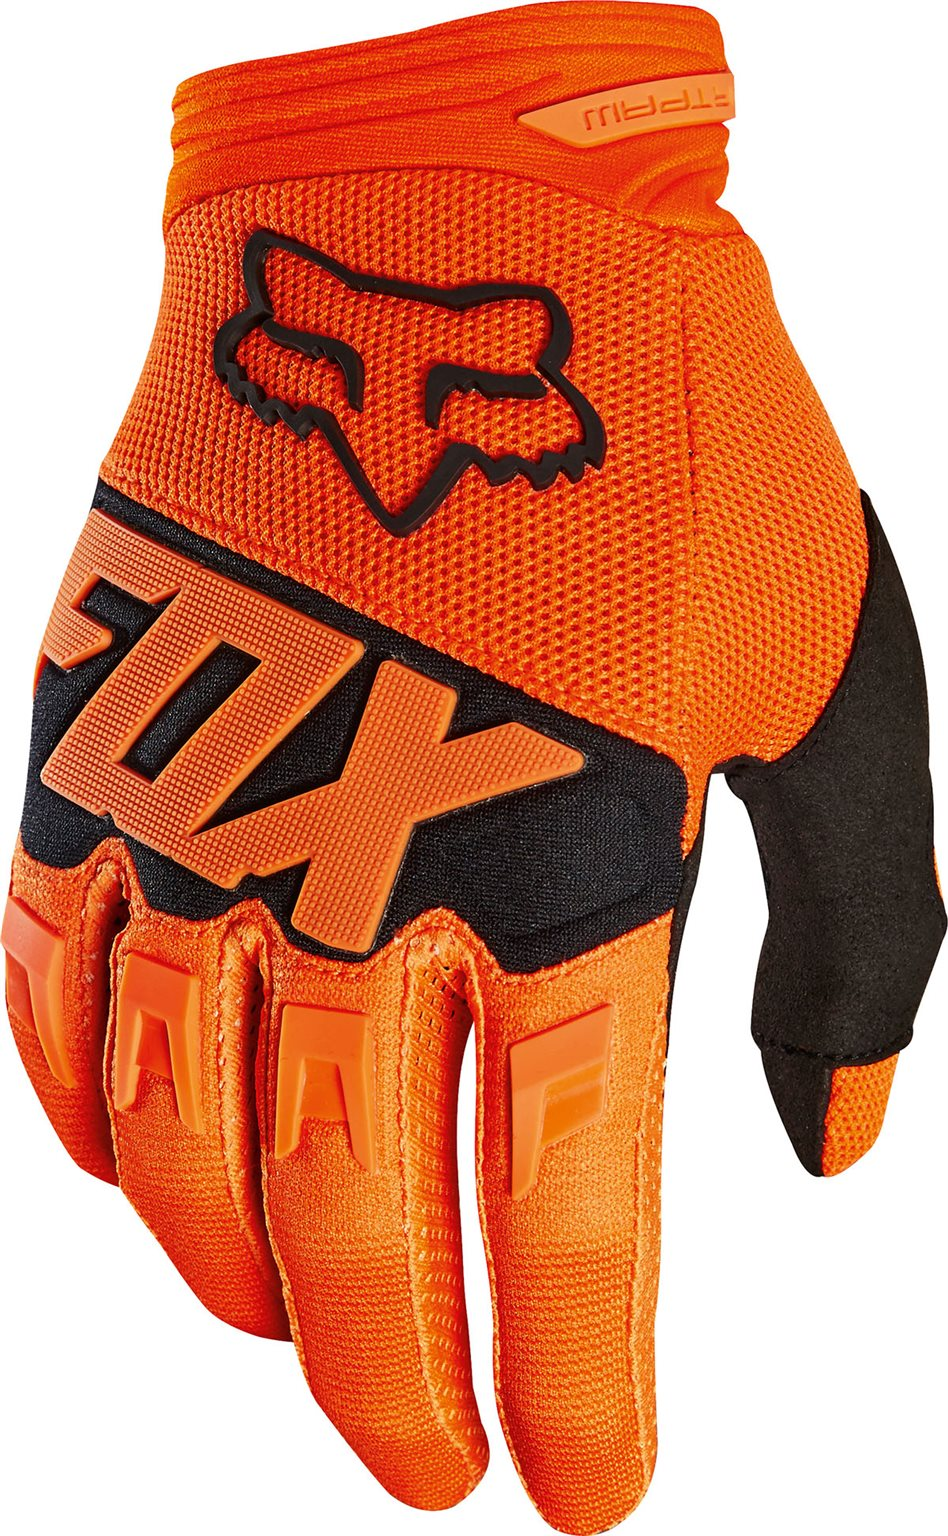 Fox cross kesztyû Dirtpaw Race orange